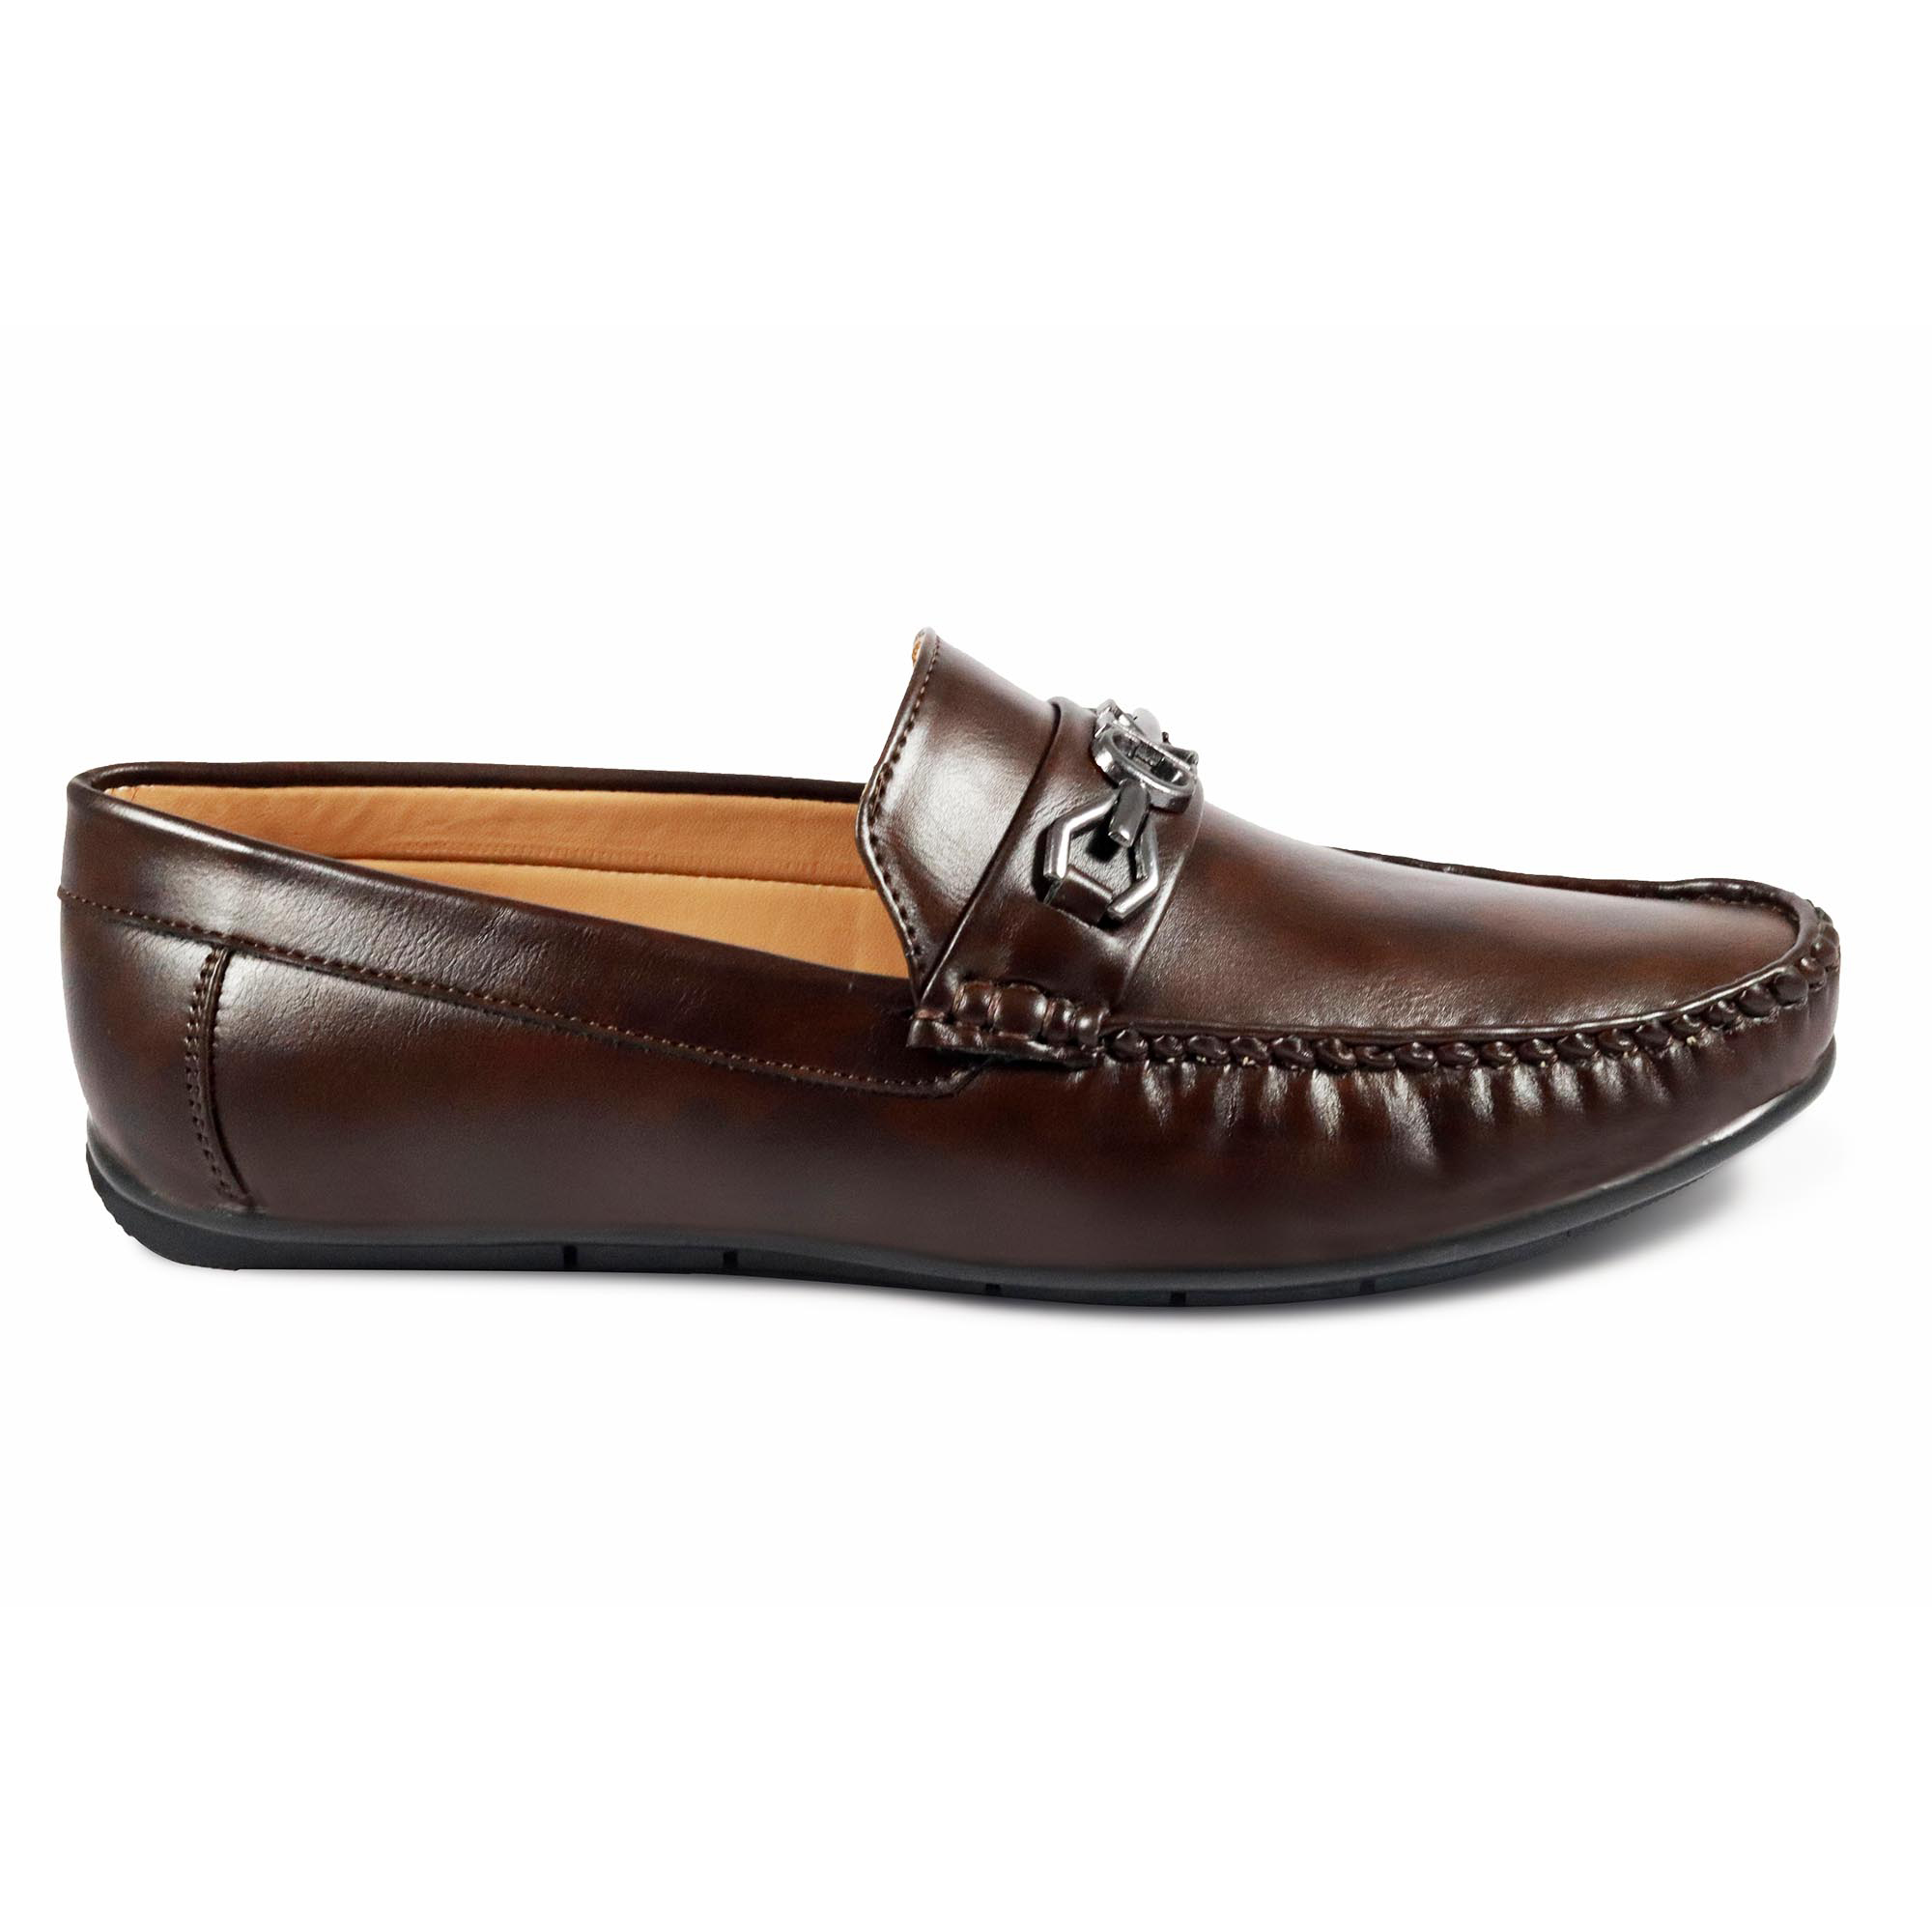 B&B Tiger Loafers For Men's Wear LF-14 BROWN (BROWN, 7-10( Men`s), PAIR'S)